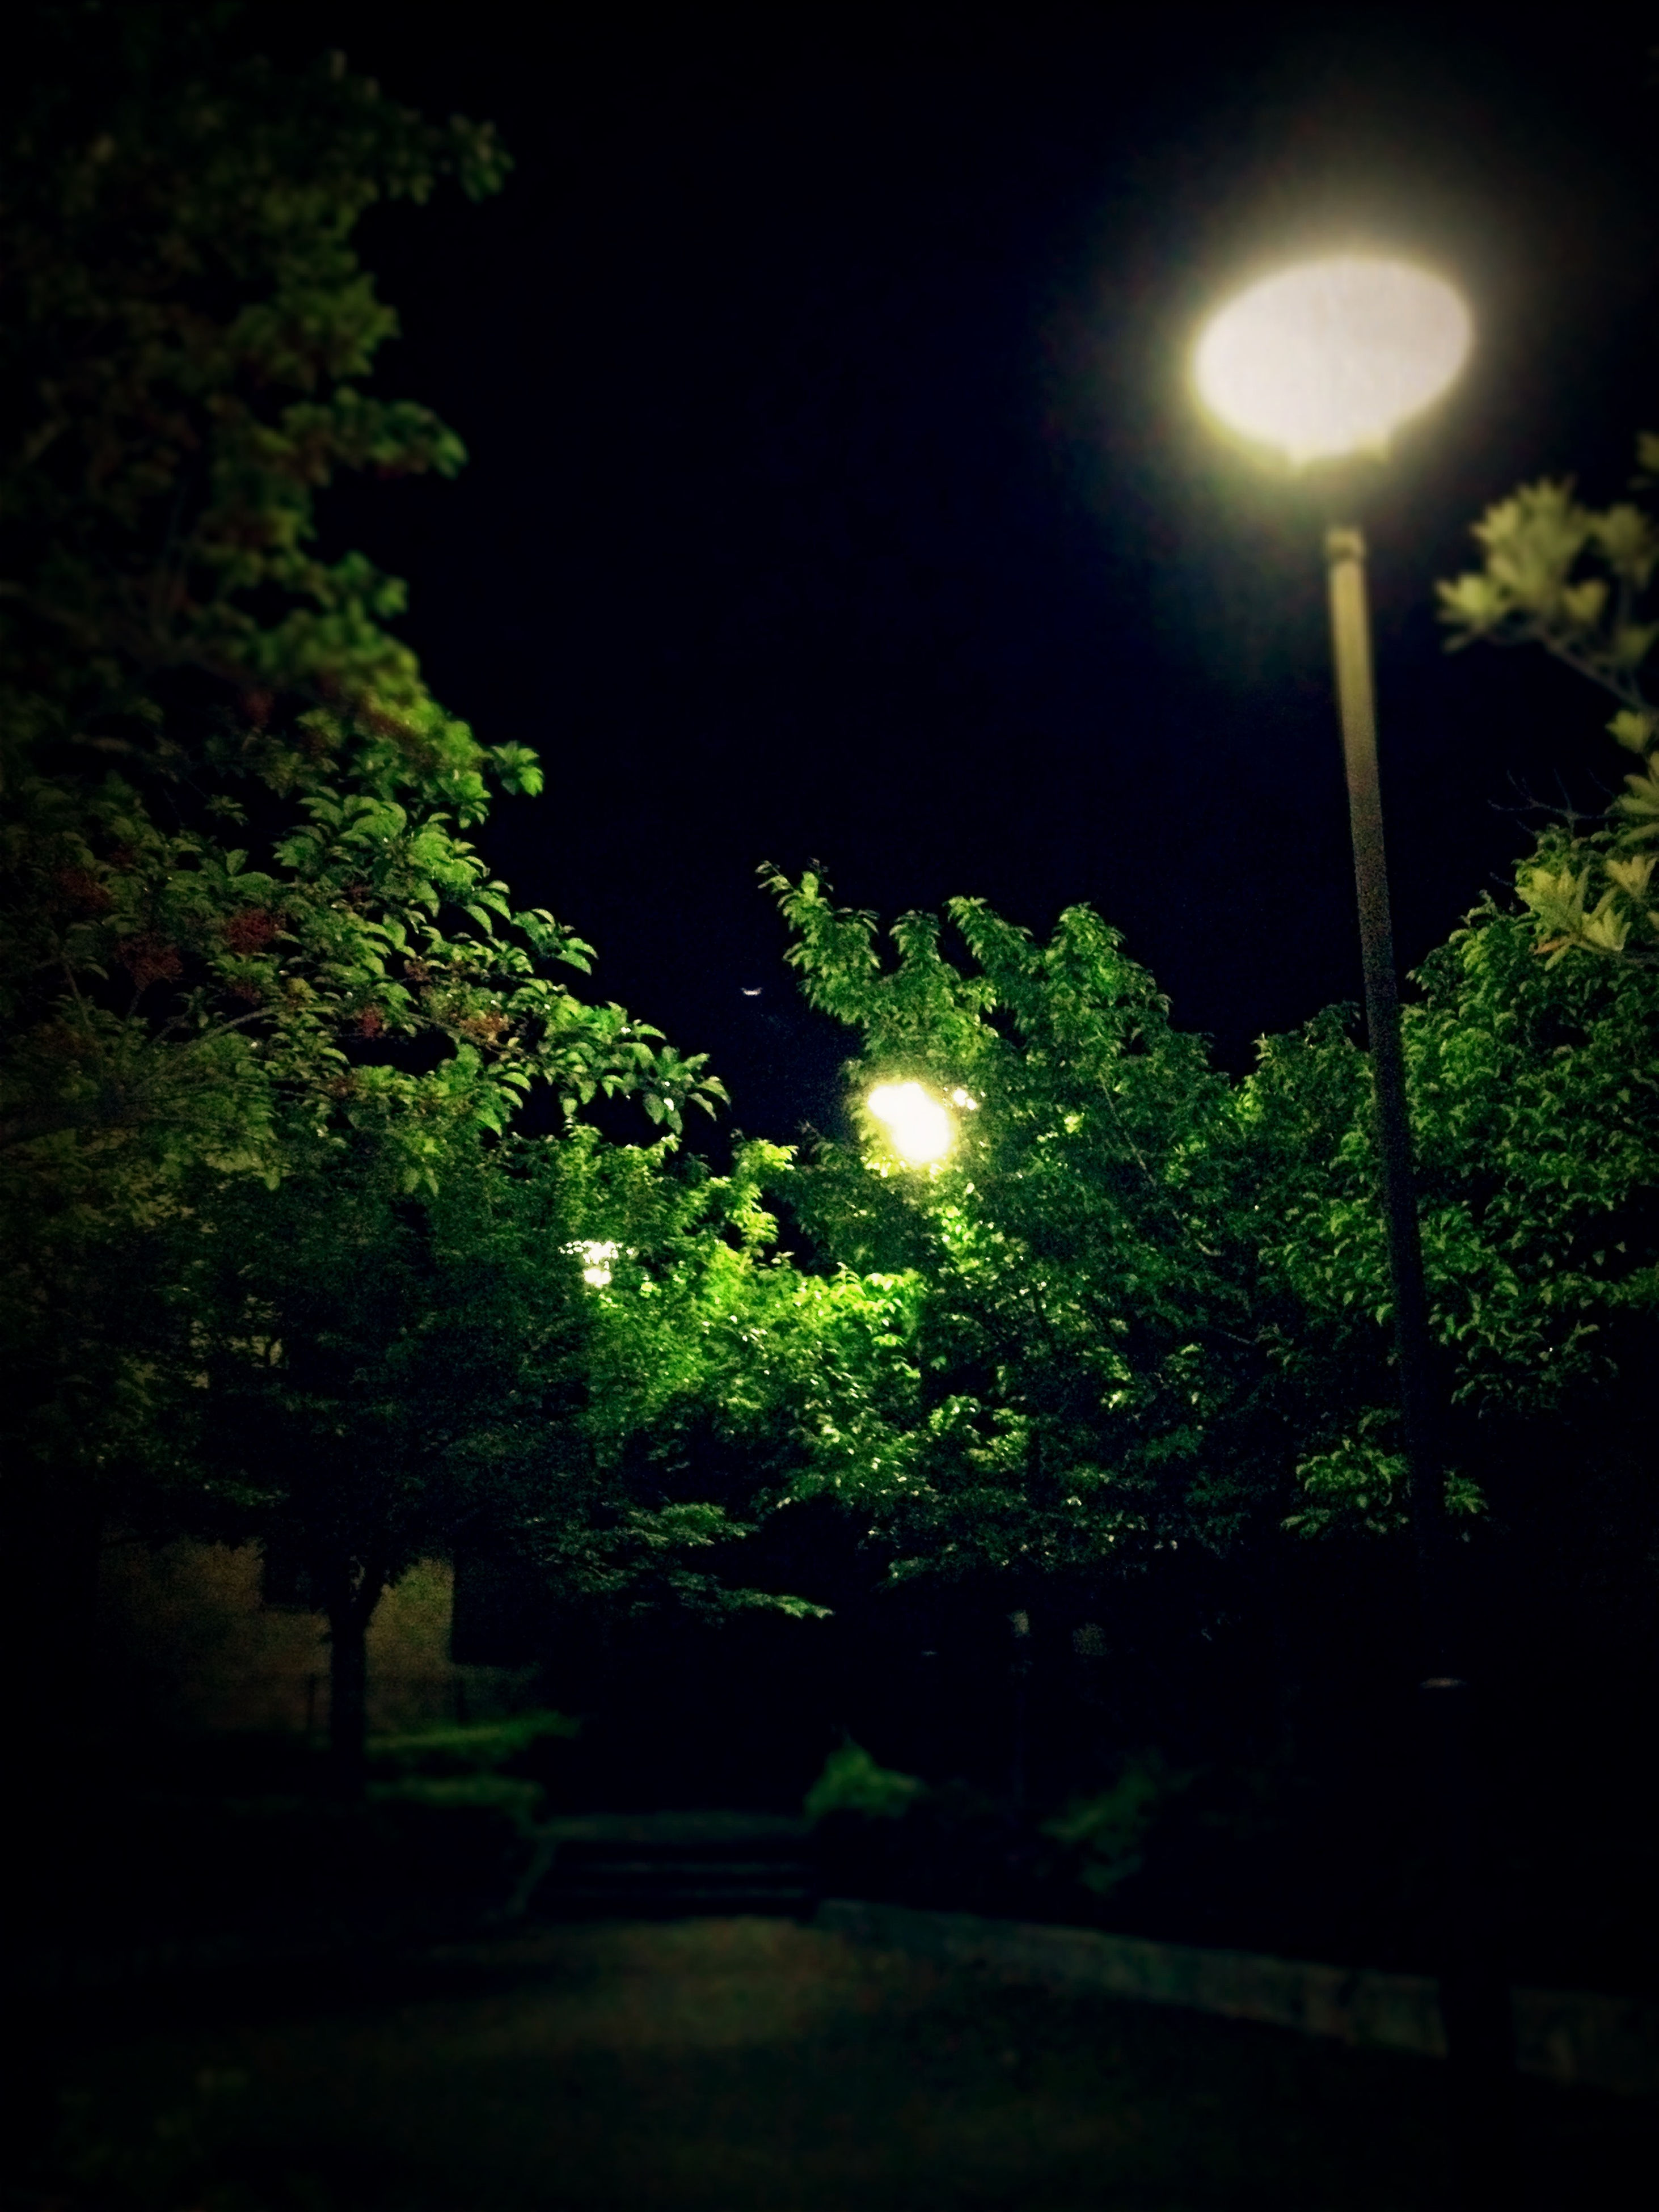 night, street light, illuminated, tree, lighting equipment, low angle view, green color, sky, growth, tranquility, nature, glowing, electricity, electric light, outdoors, lamp post, no people, light - natural phenomenon, beauty in nature, clear sky